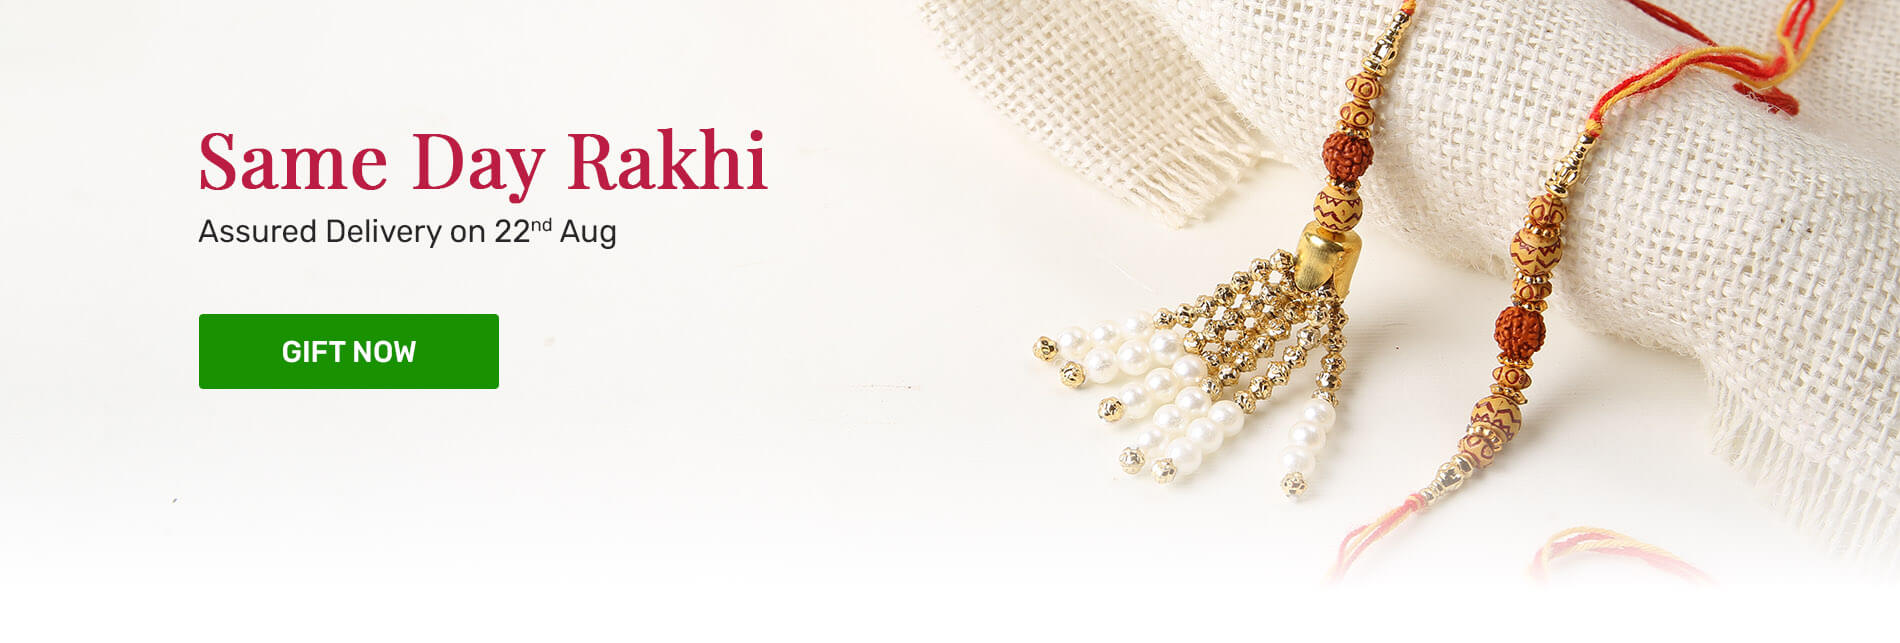 Same Day Rakhi Express Delivery in India